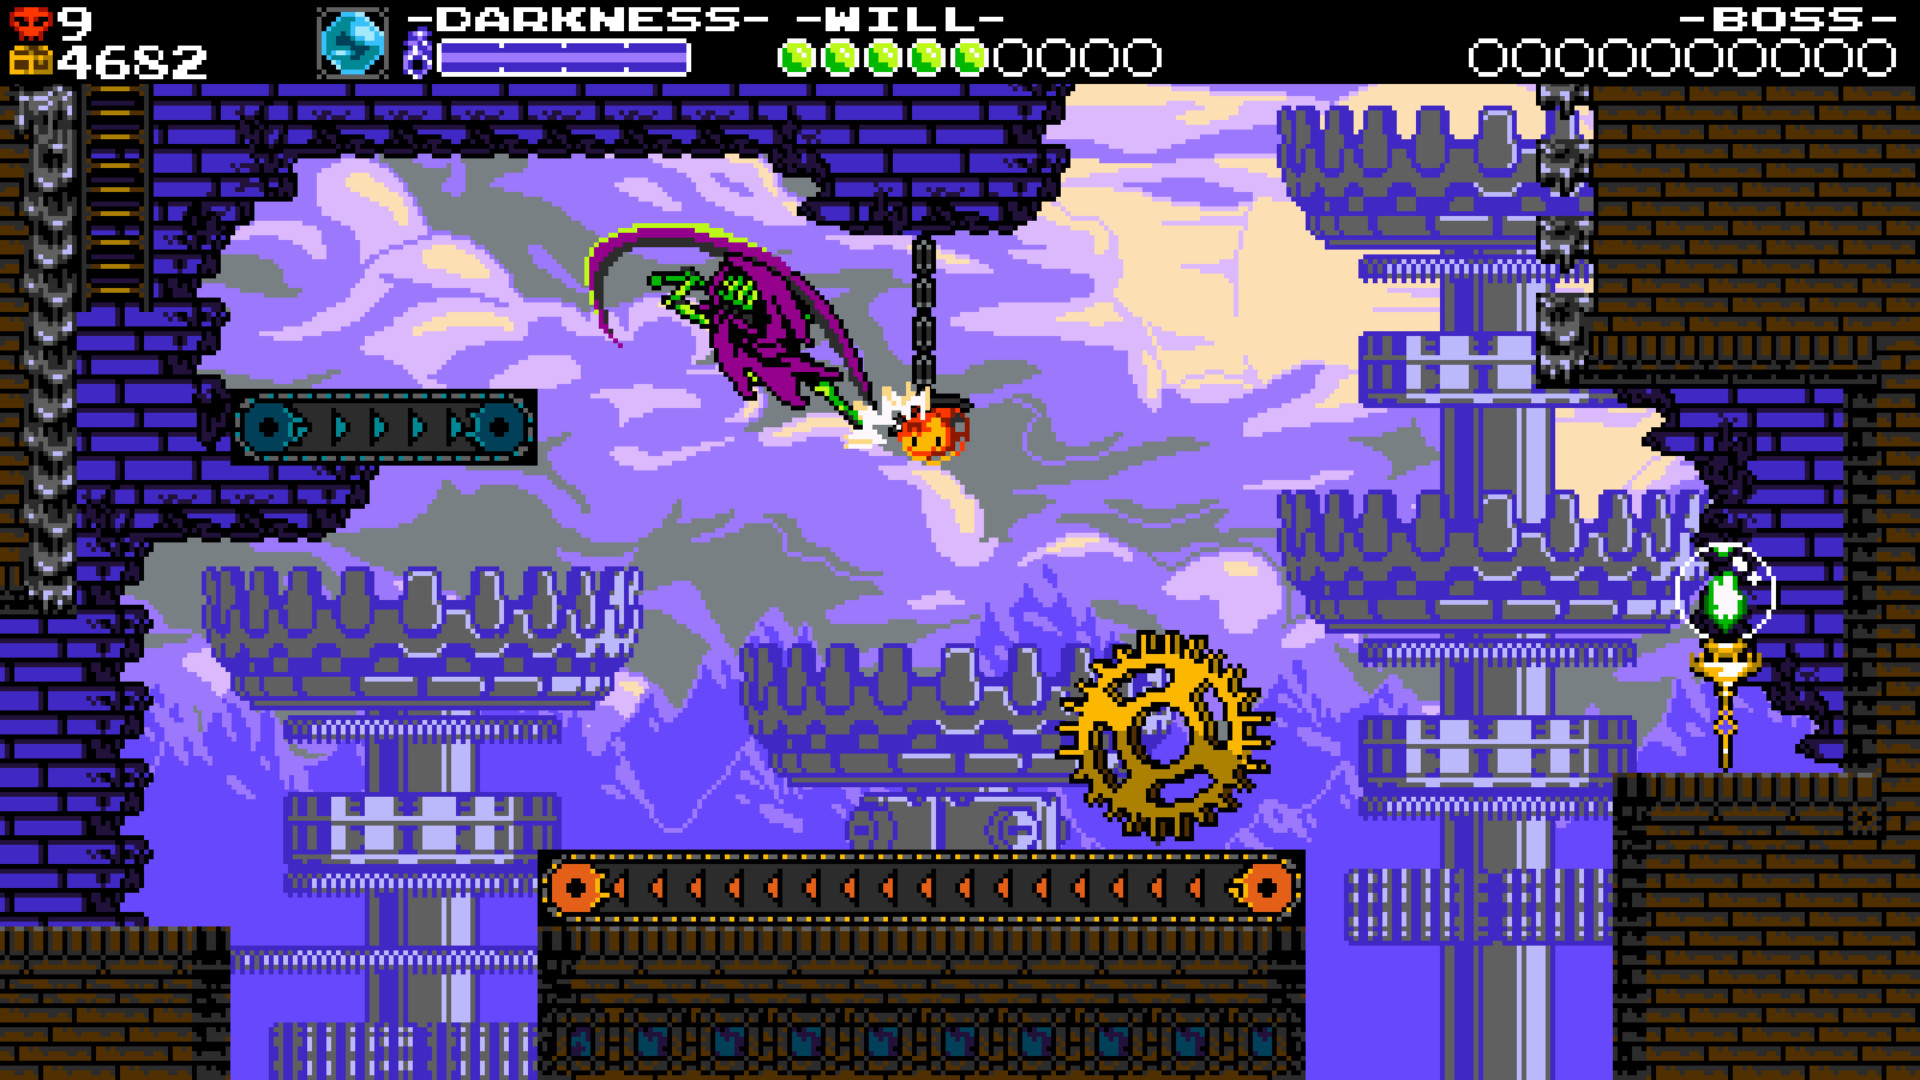 If you're wondering about Shovel Knight: Shovel of Hope and Shovel Knight:  Plague of Shadows, they will get stand-alone releases at a later date.